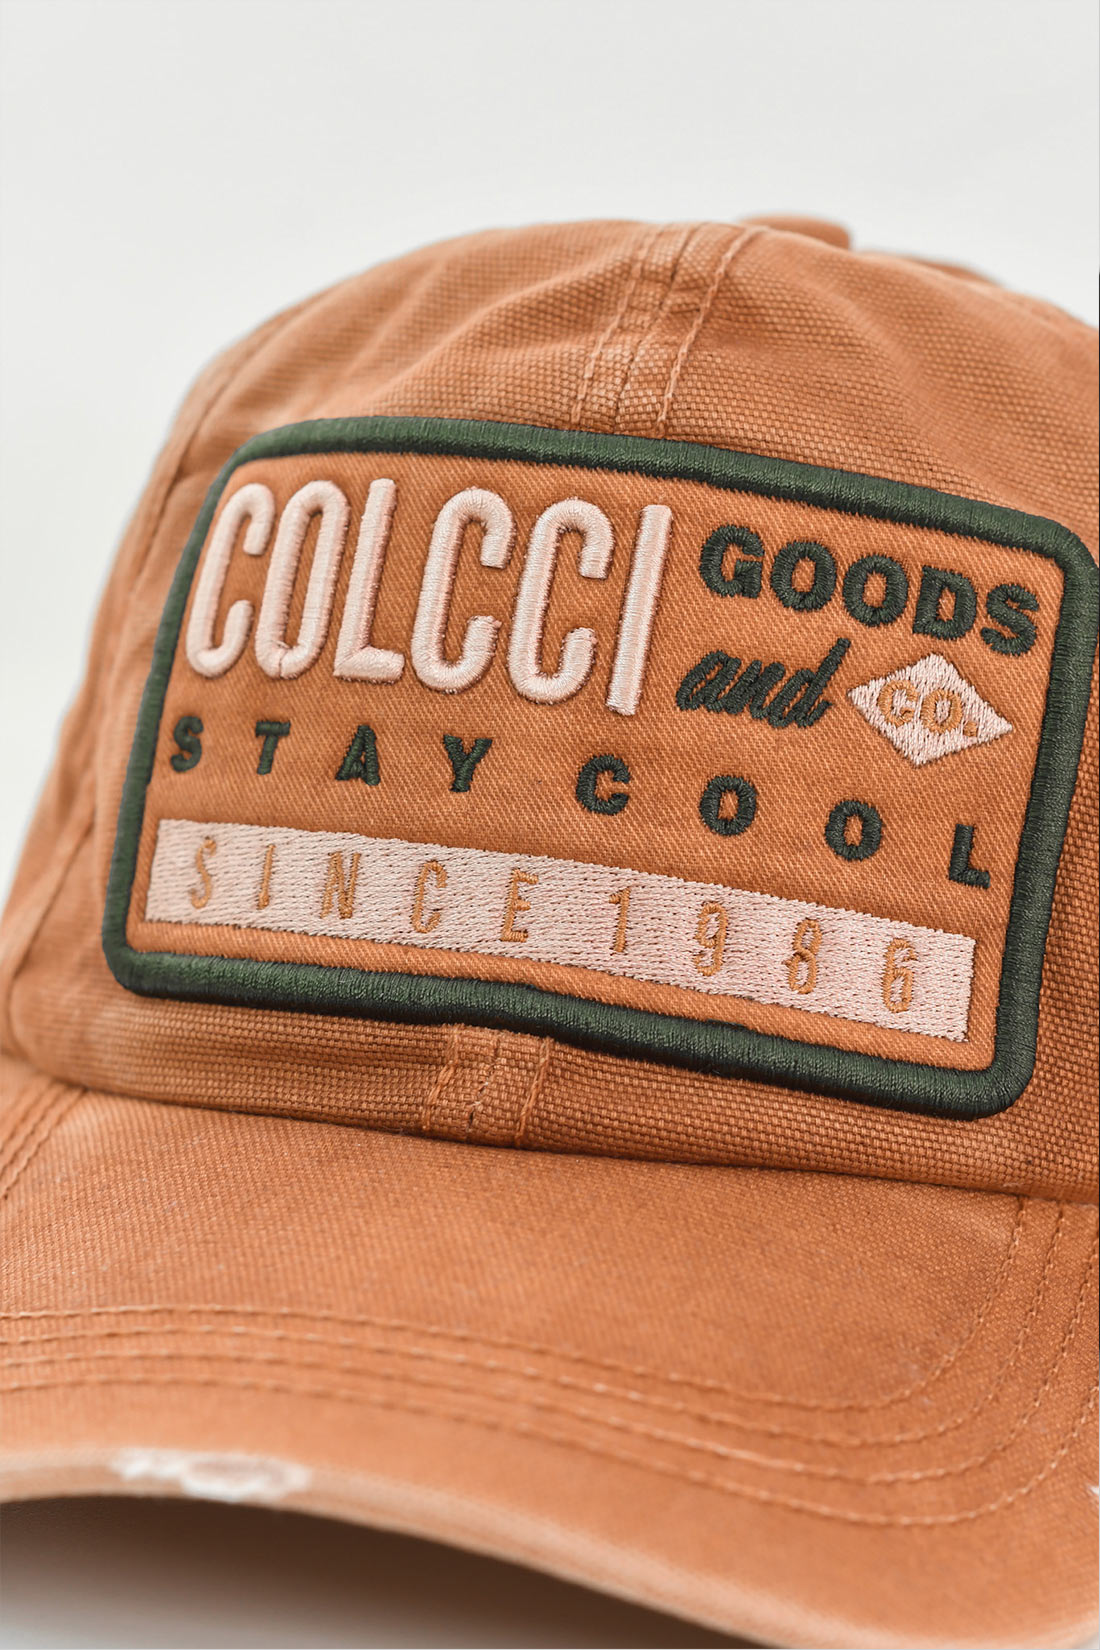 Bone Colcci Goods And Co Stay Coll